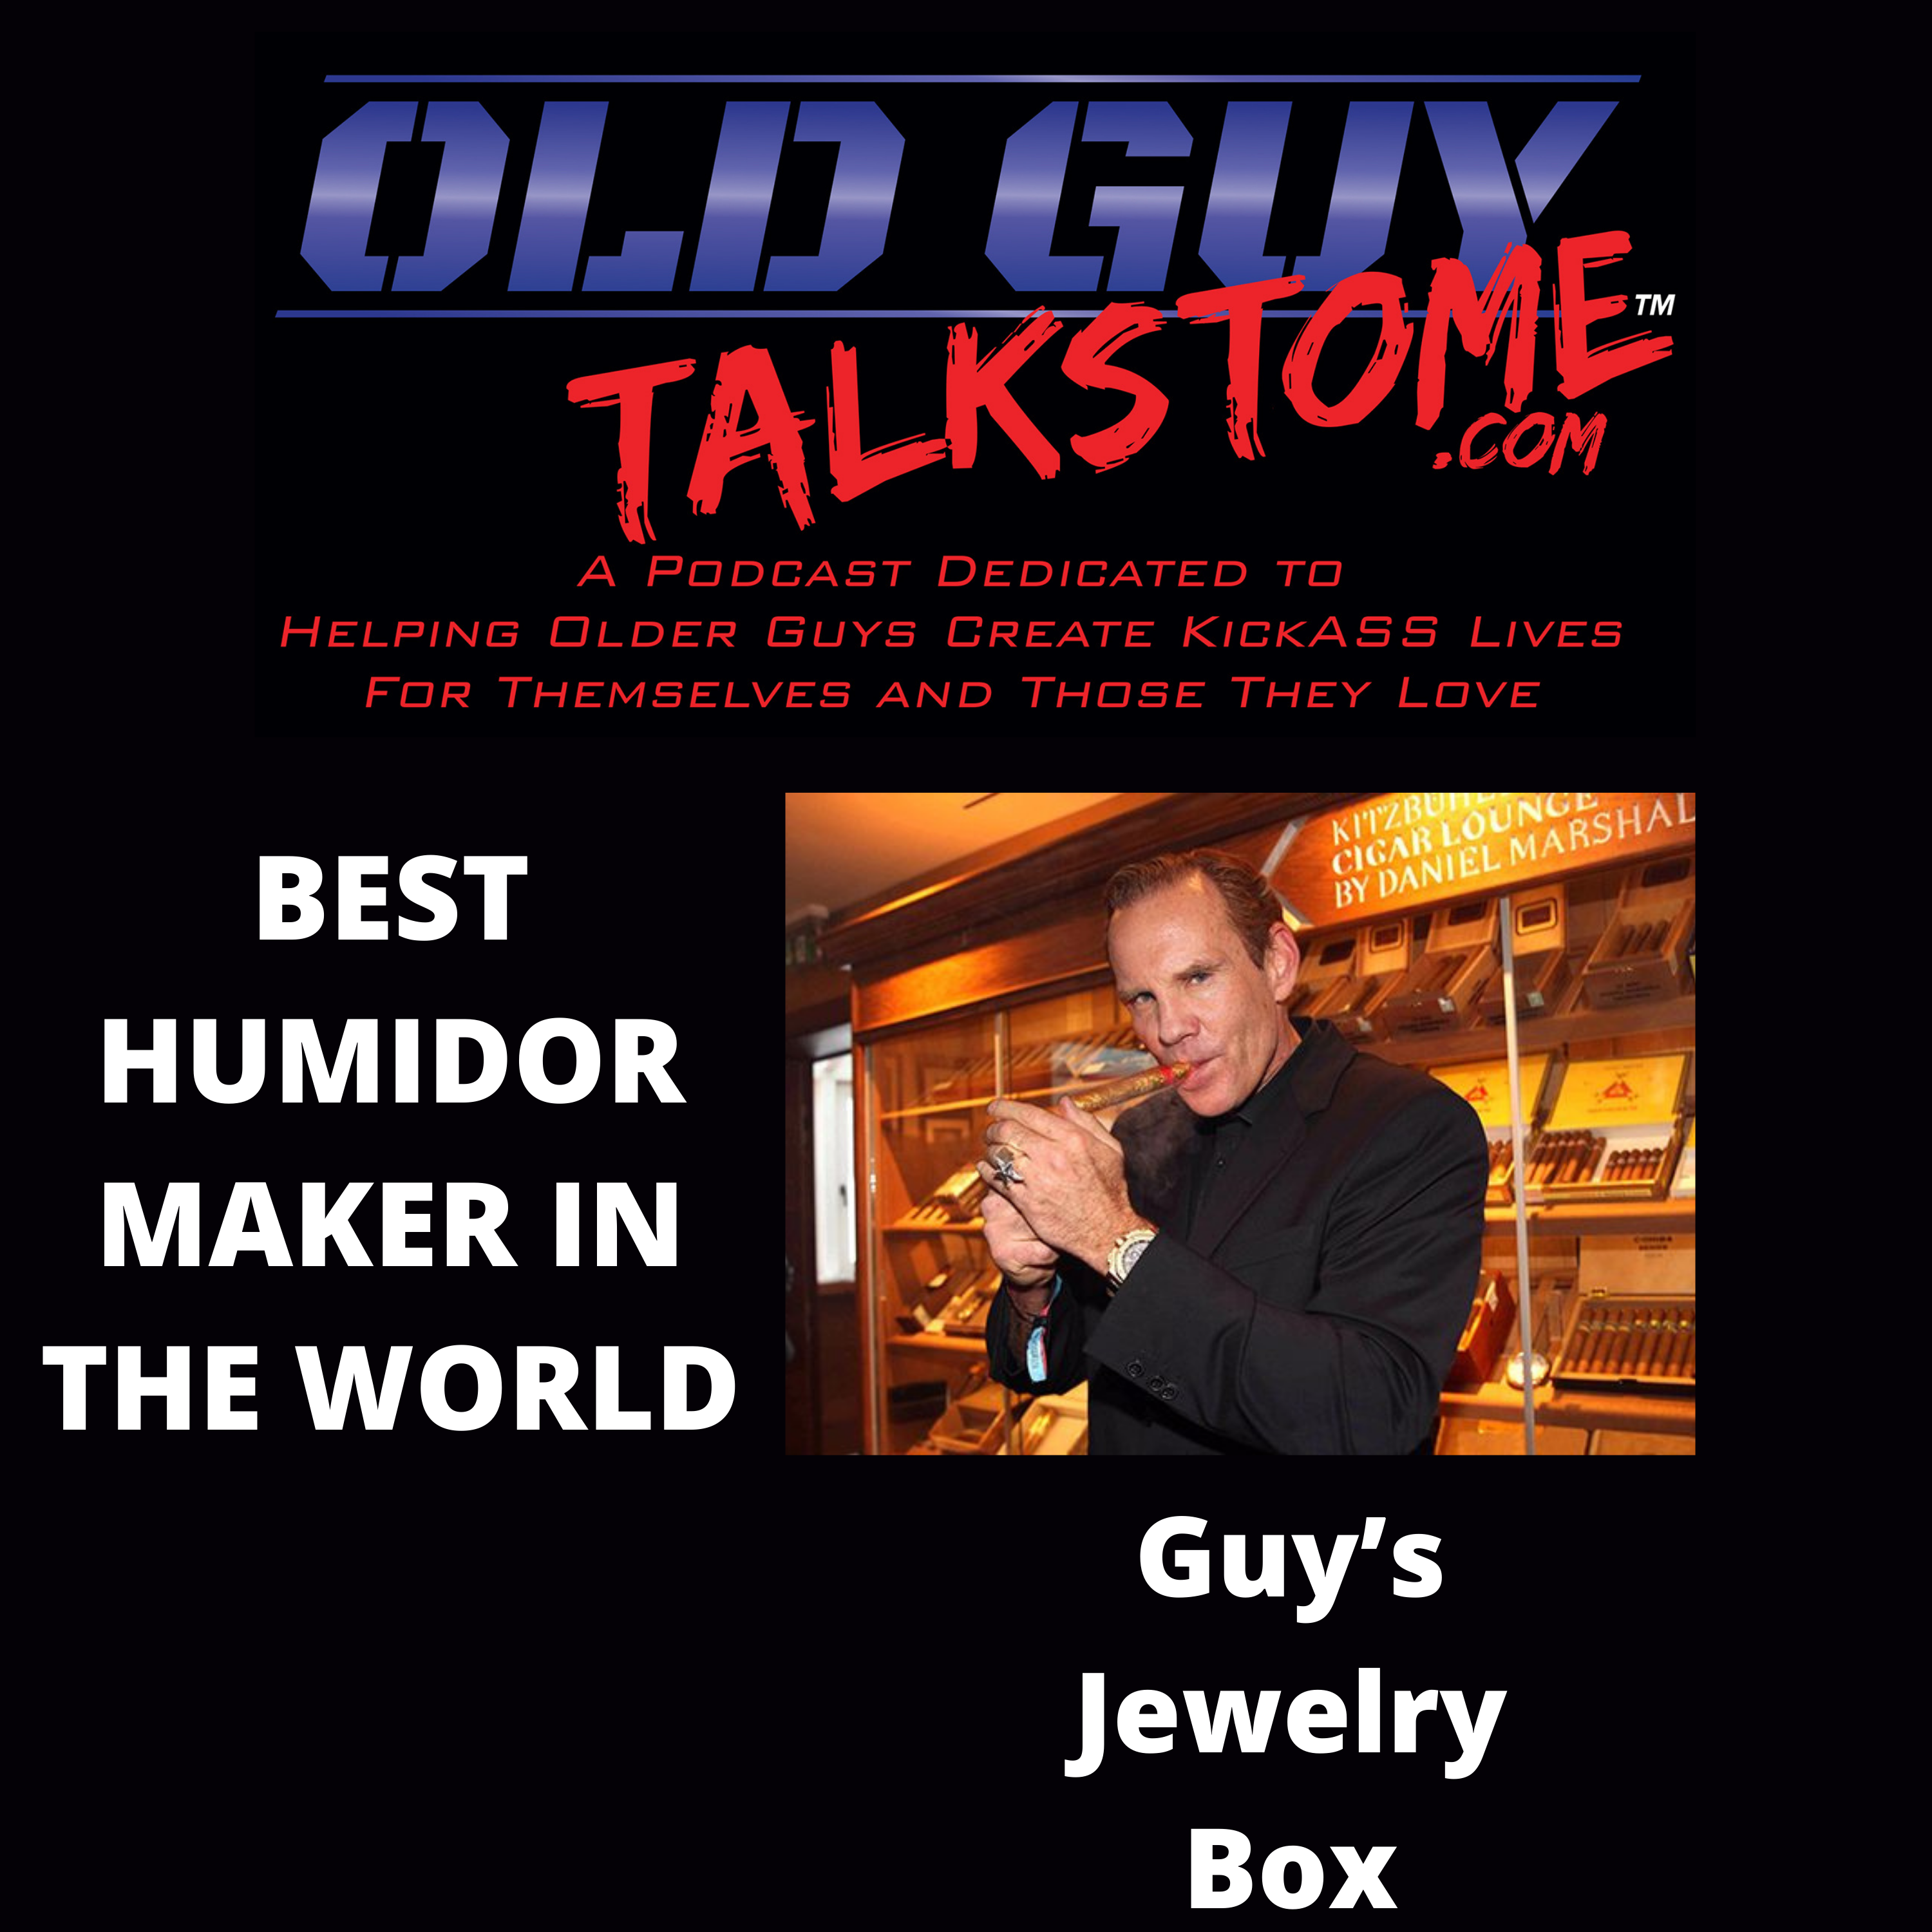 OldGuyTalksToMe - THE BEST HUMIDOR MAKER IN THE WORLD, DANIEL MARSHALL